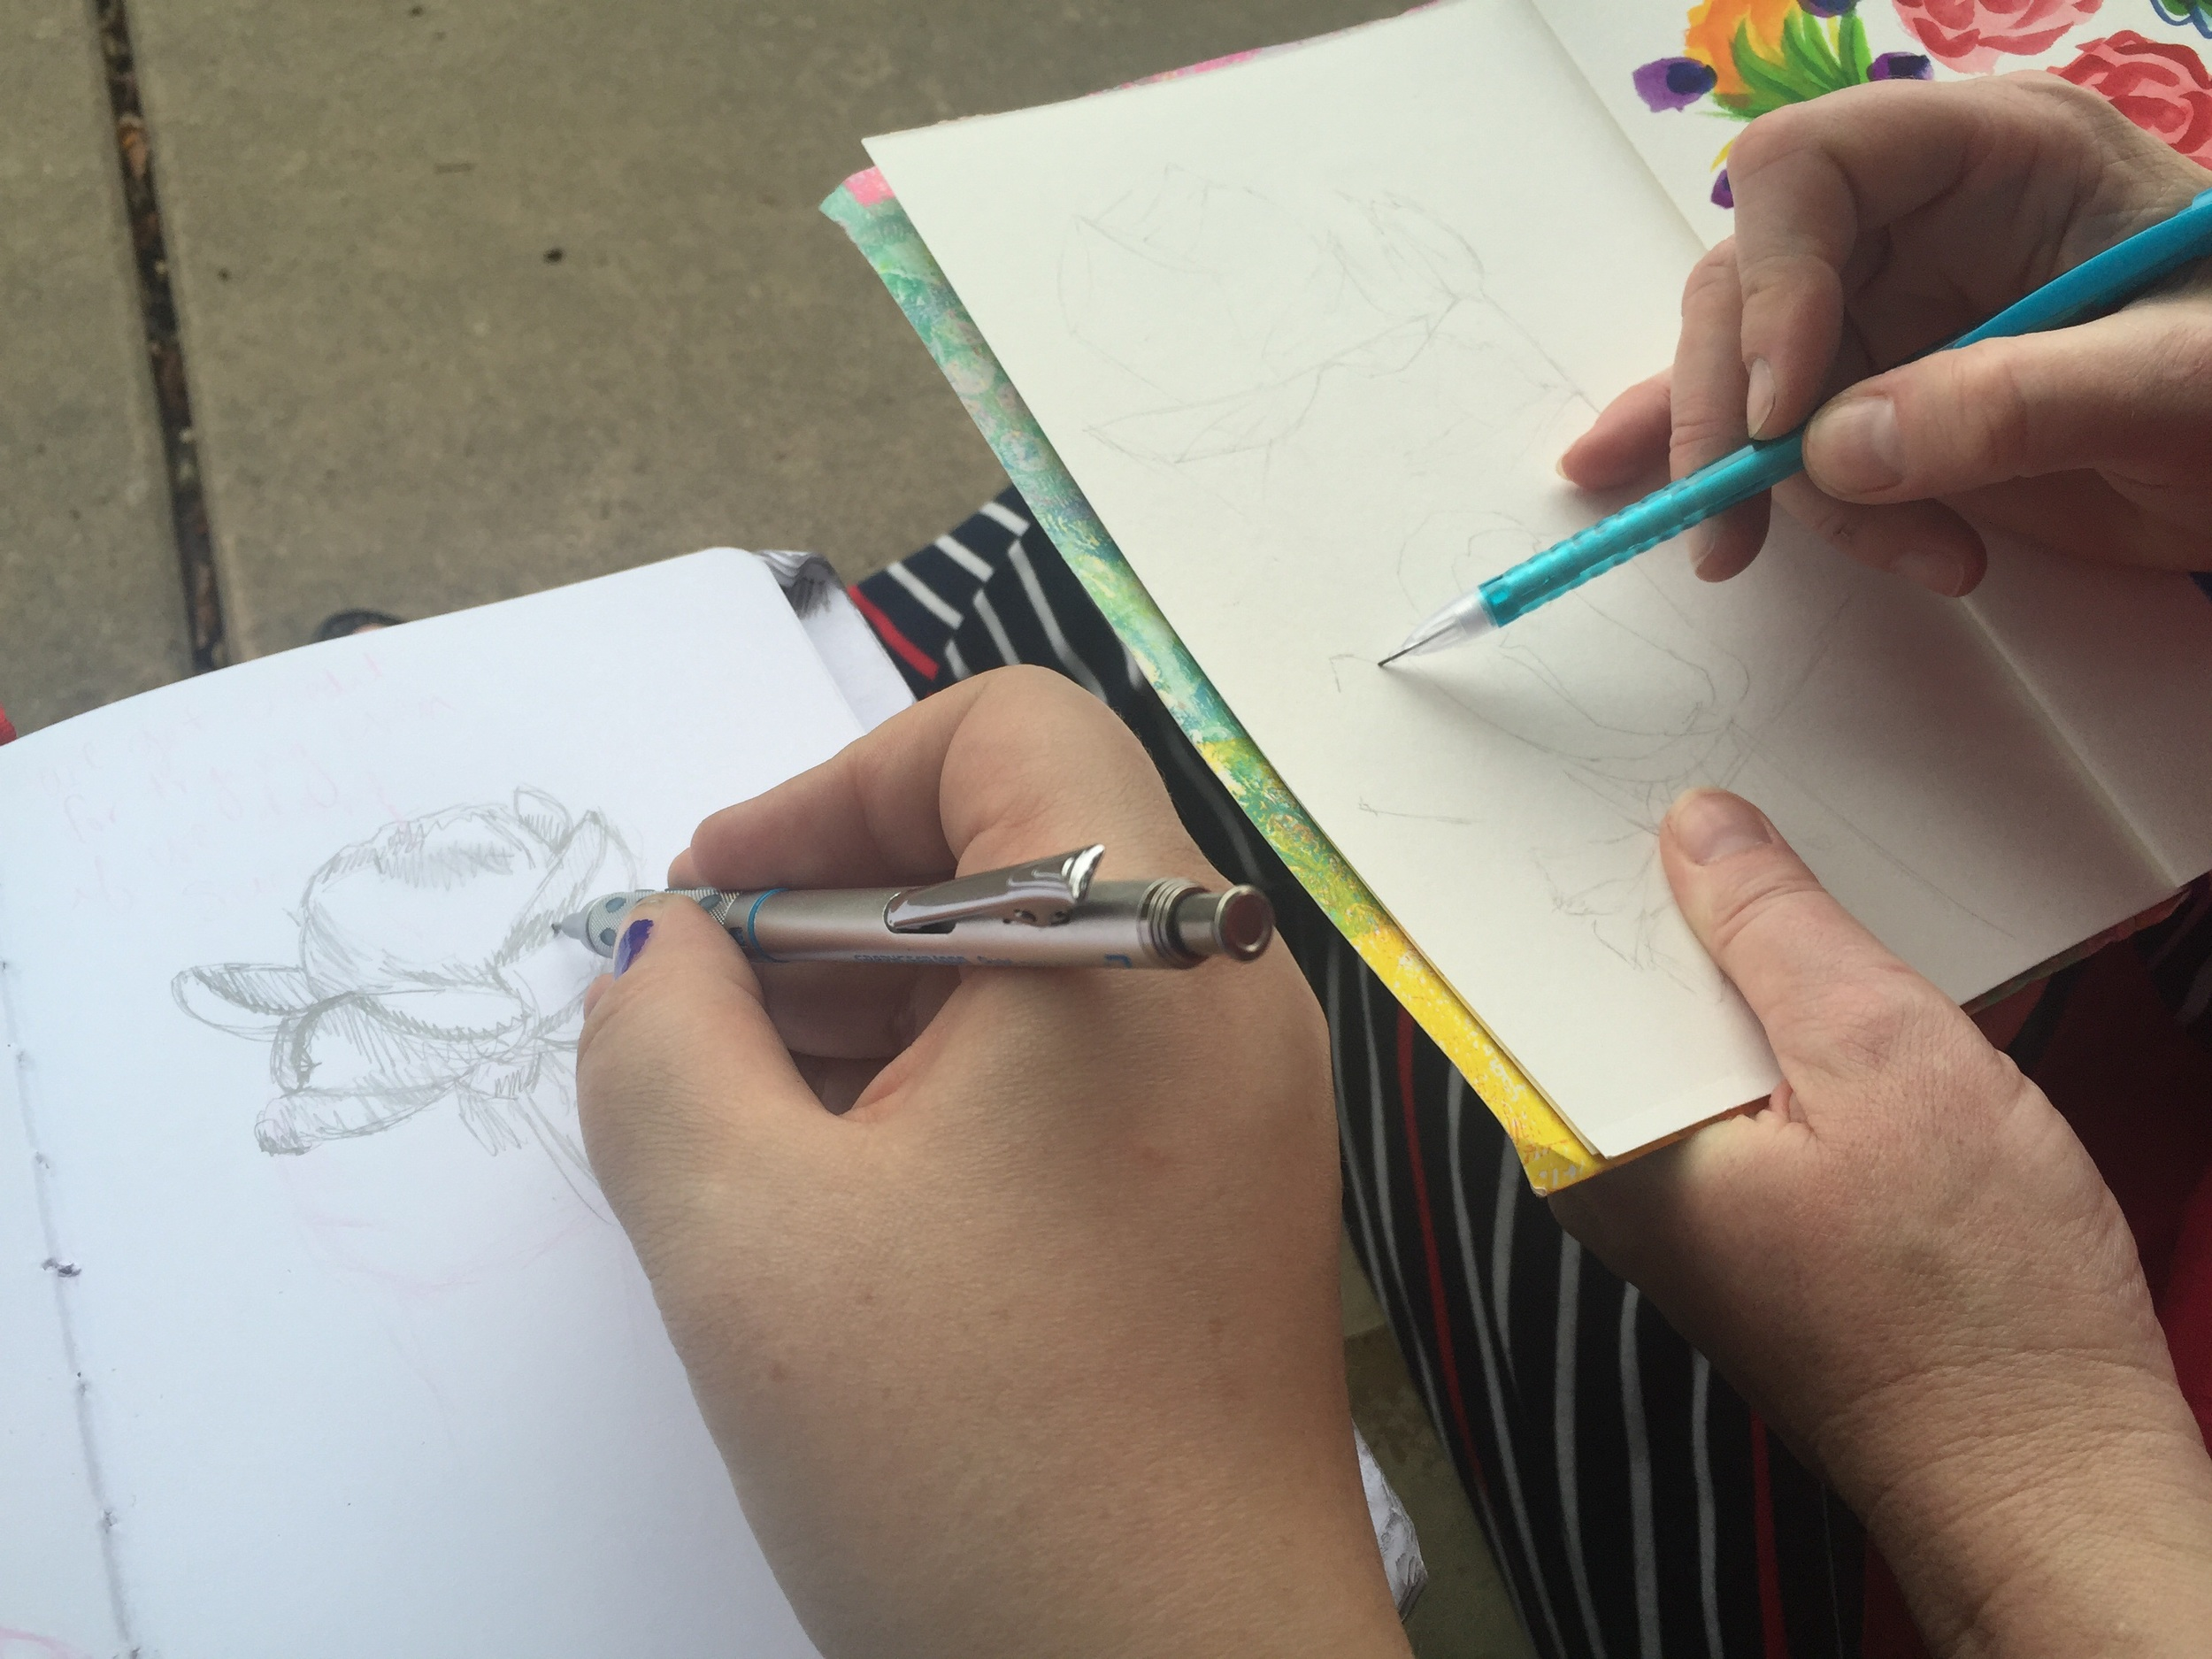 Bunny and I sketching at the Balboa Park Rose Garden.